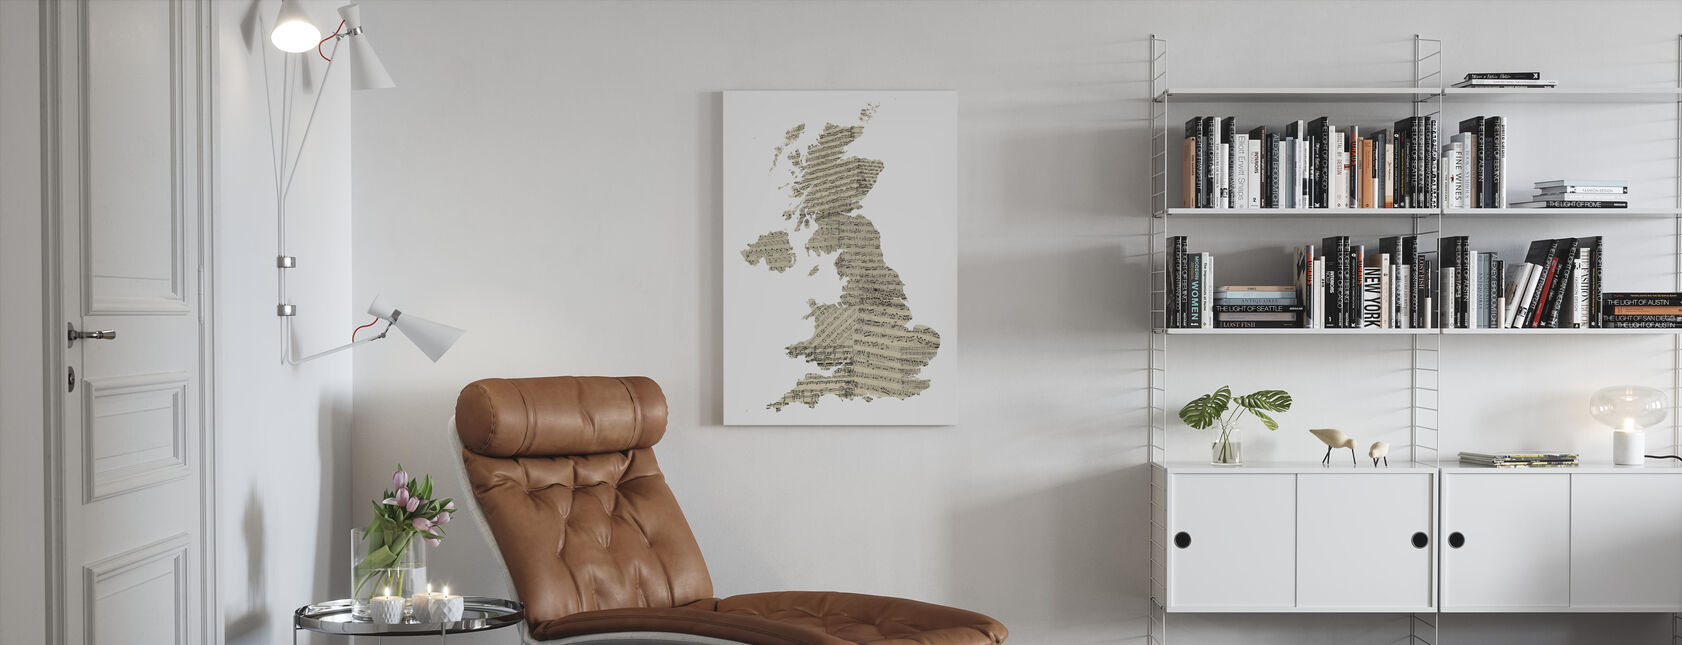 Great Britain Old Music Sheet Map - Impression sur toile - Salle à manger